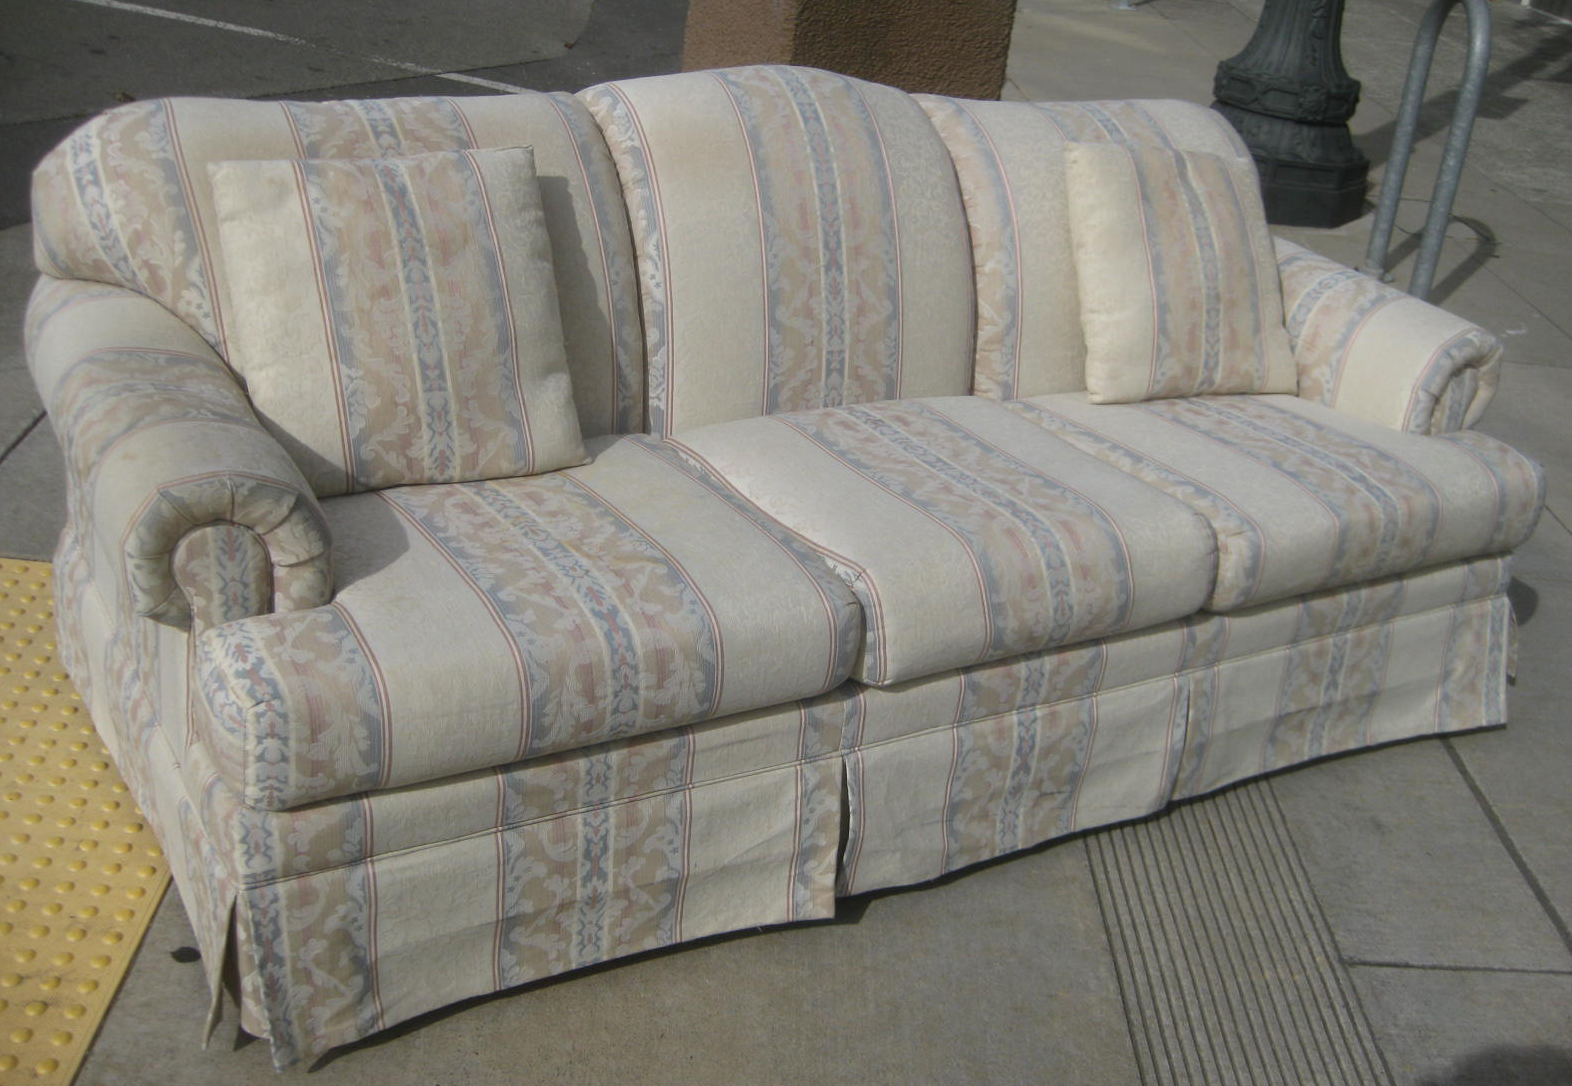 Uhuru Furniture Collectibles Sold Striped Sofa 60